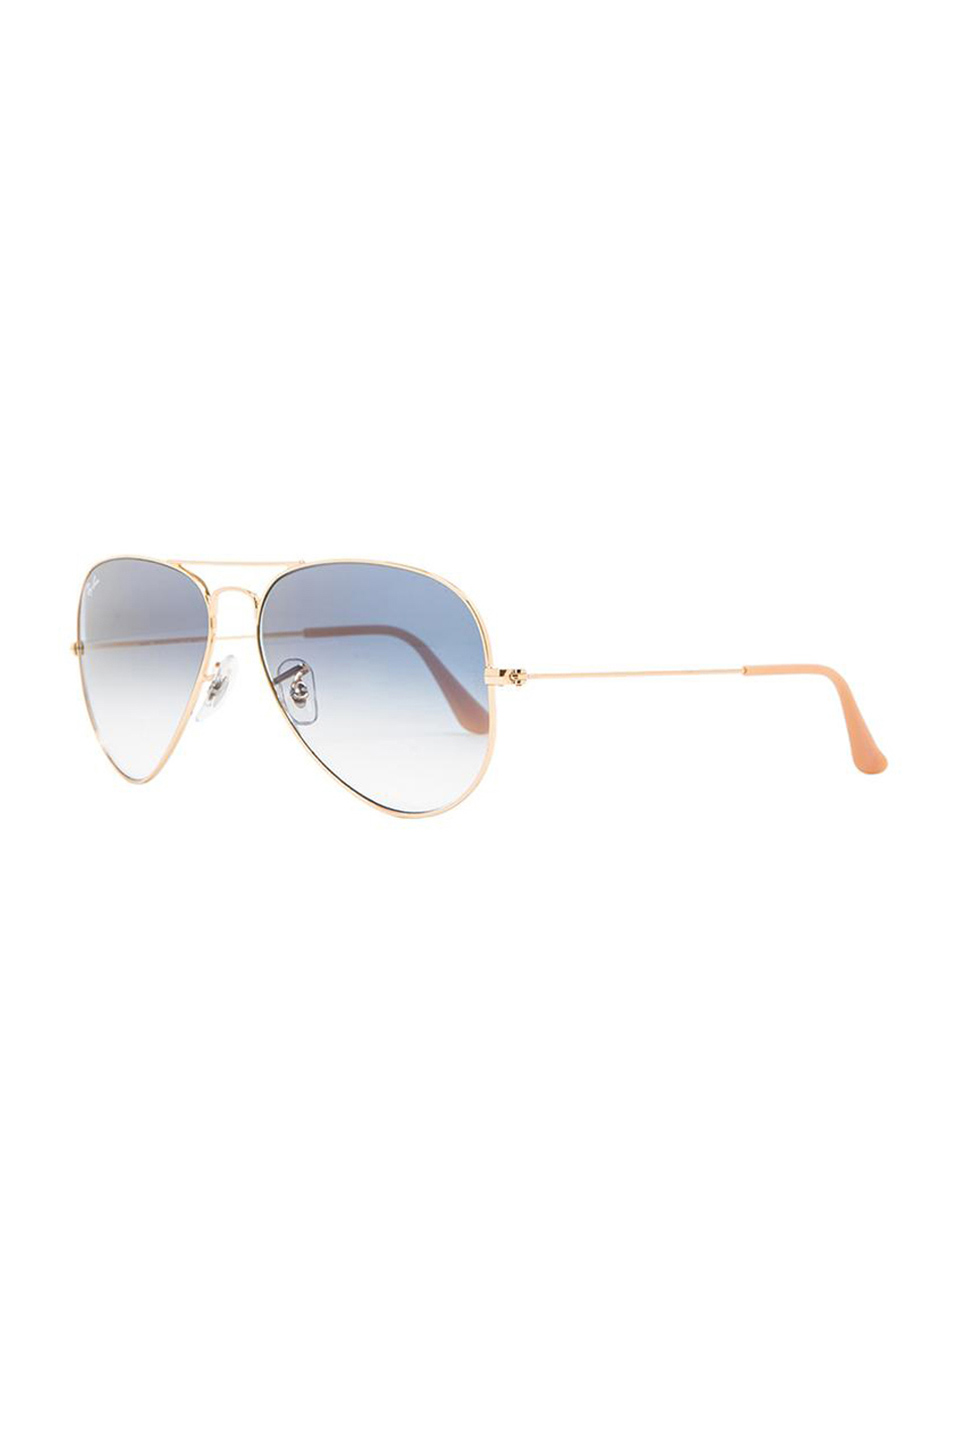 Ray-Ban Large Metal Aviator in Arista/Gradient Light Blue